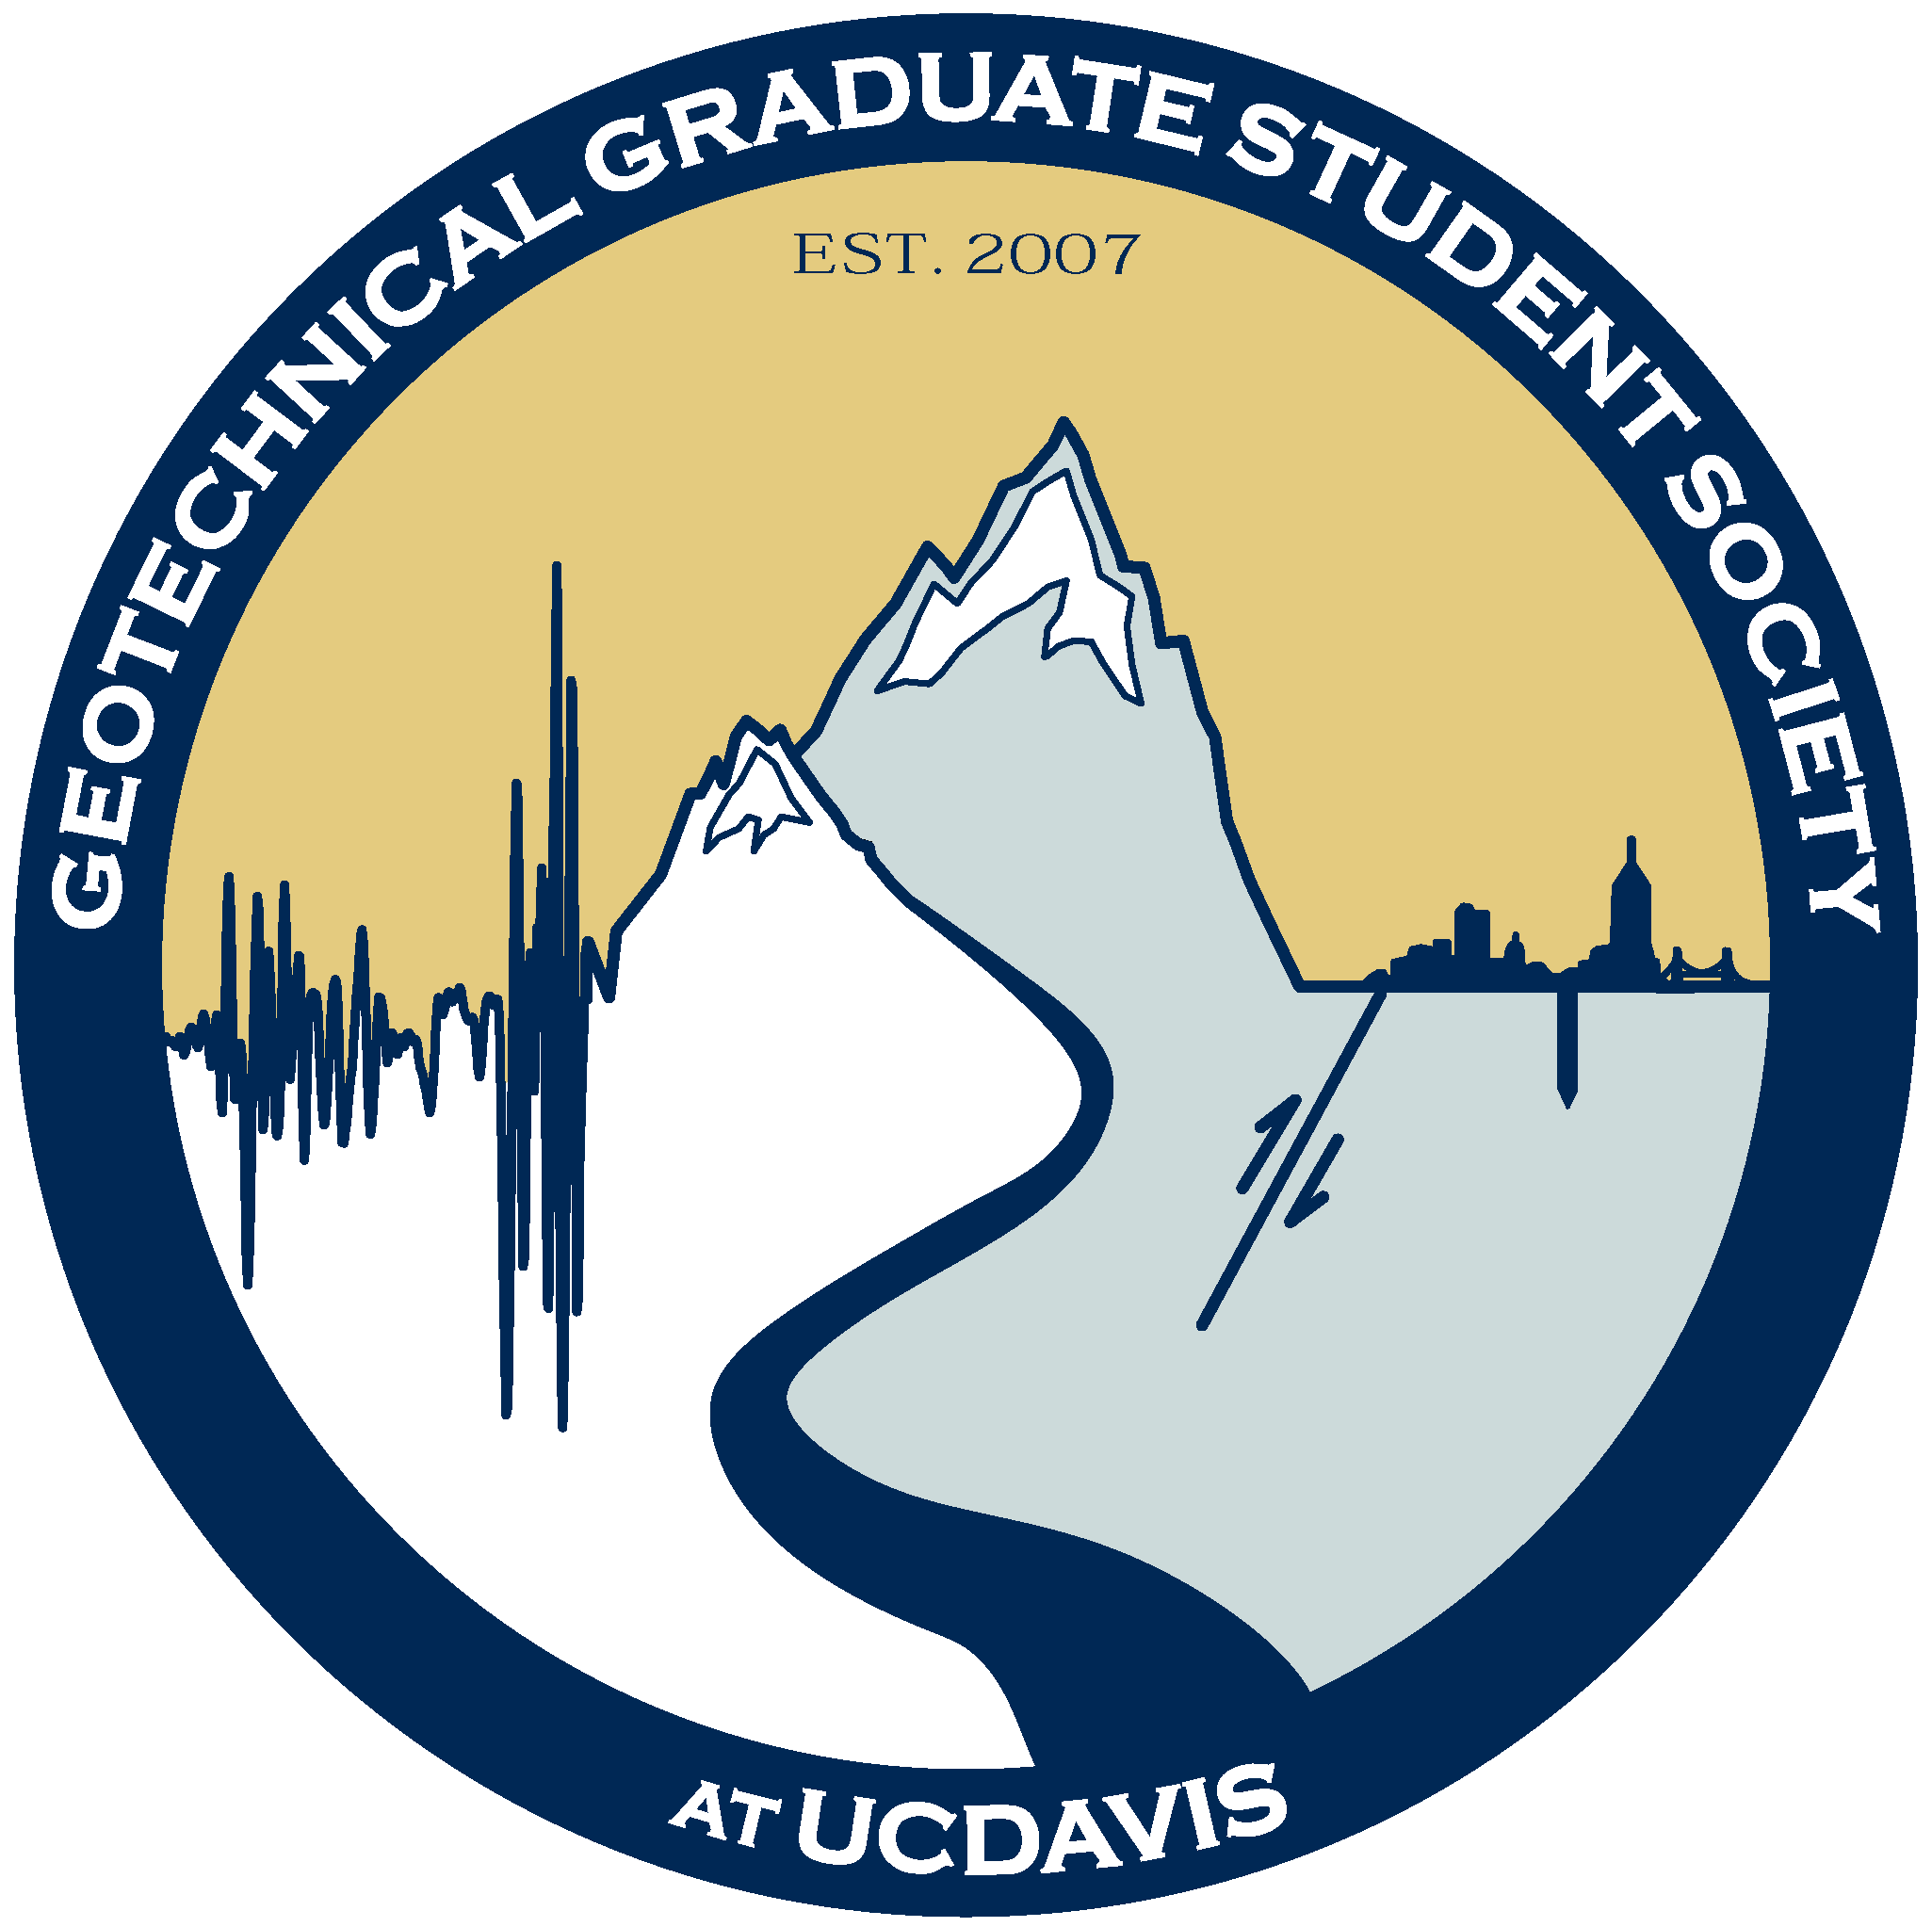 Geotechnical Graduate Student Society